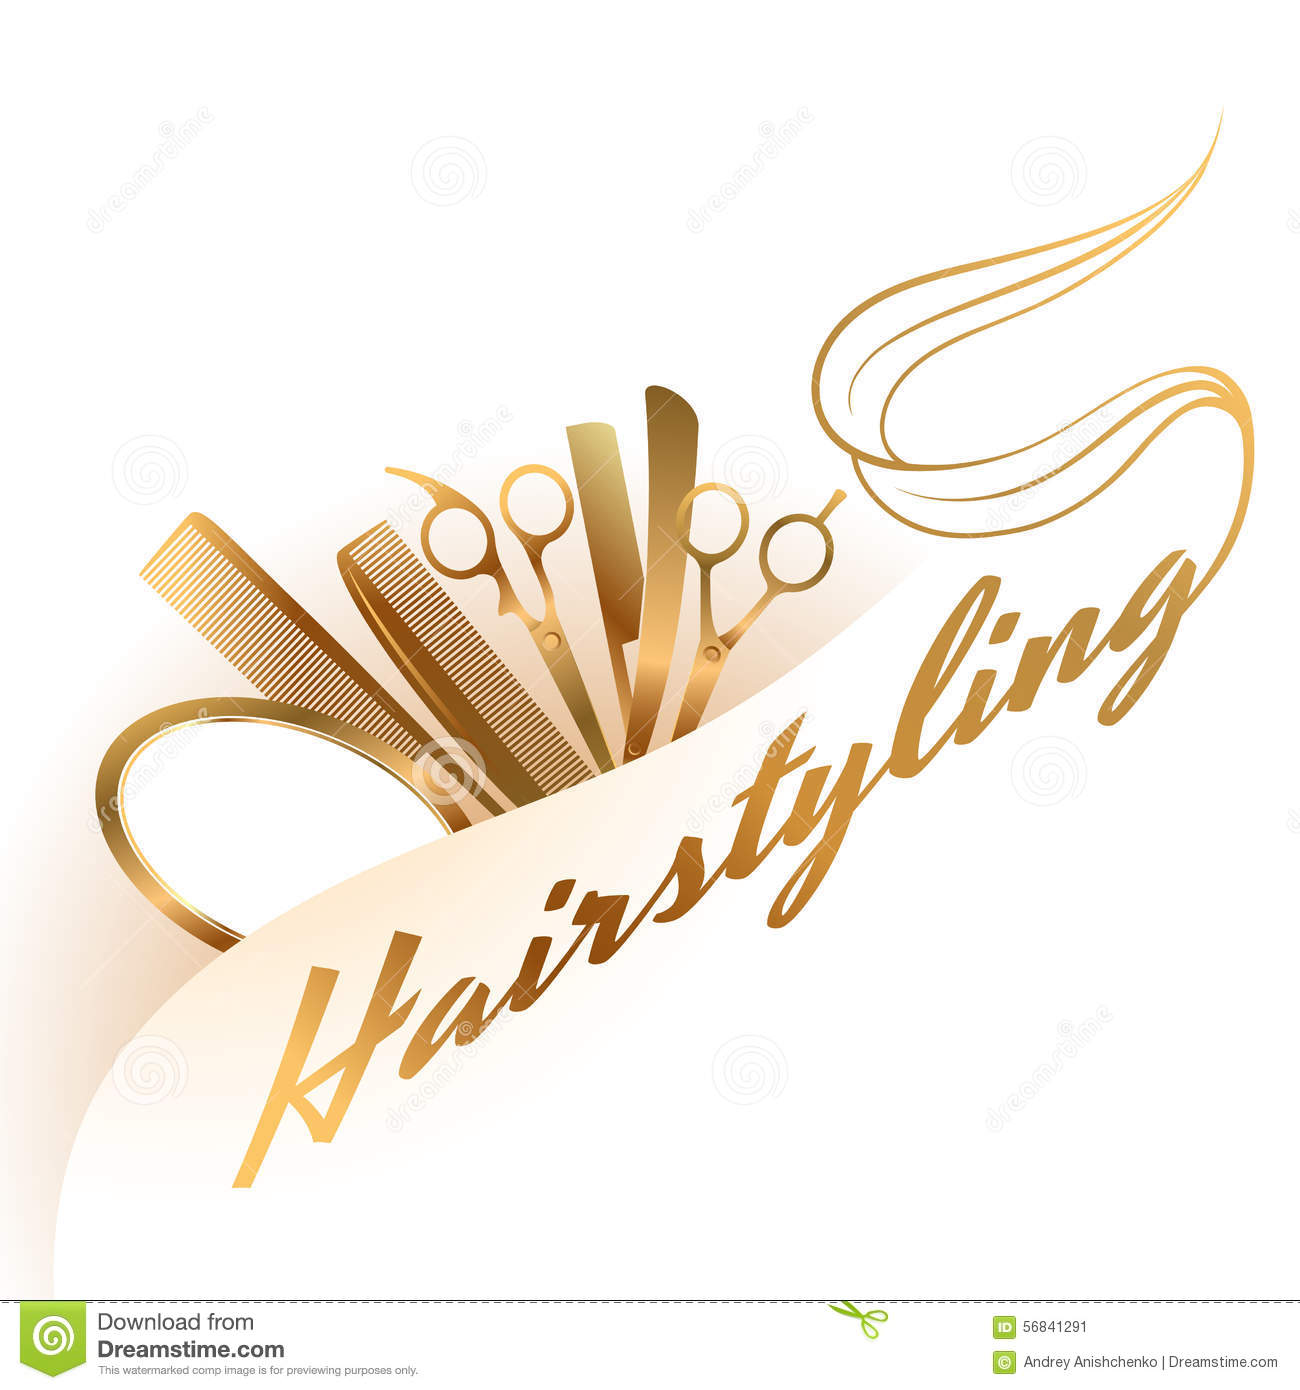 Hairstyling logo stock vector. Illustration of needle ...